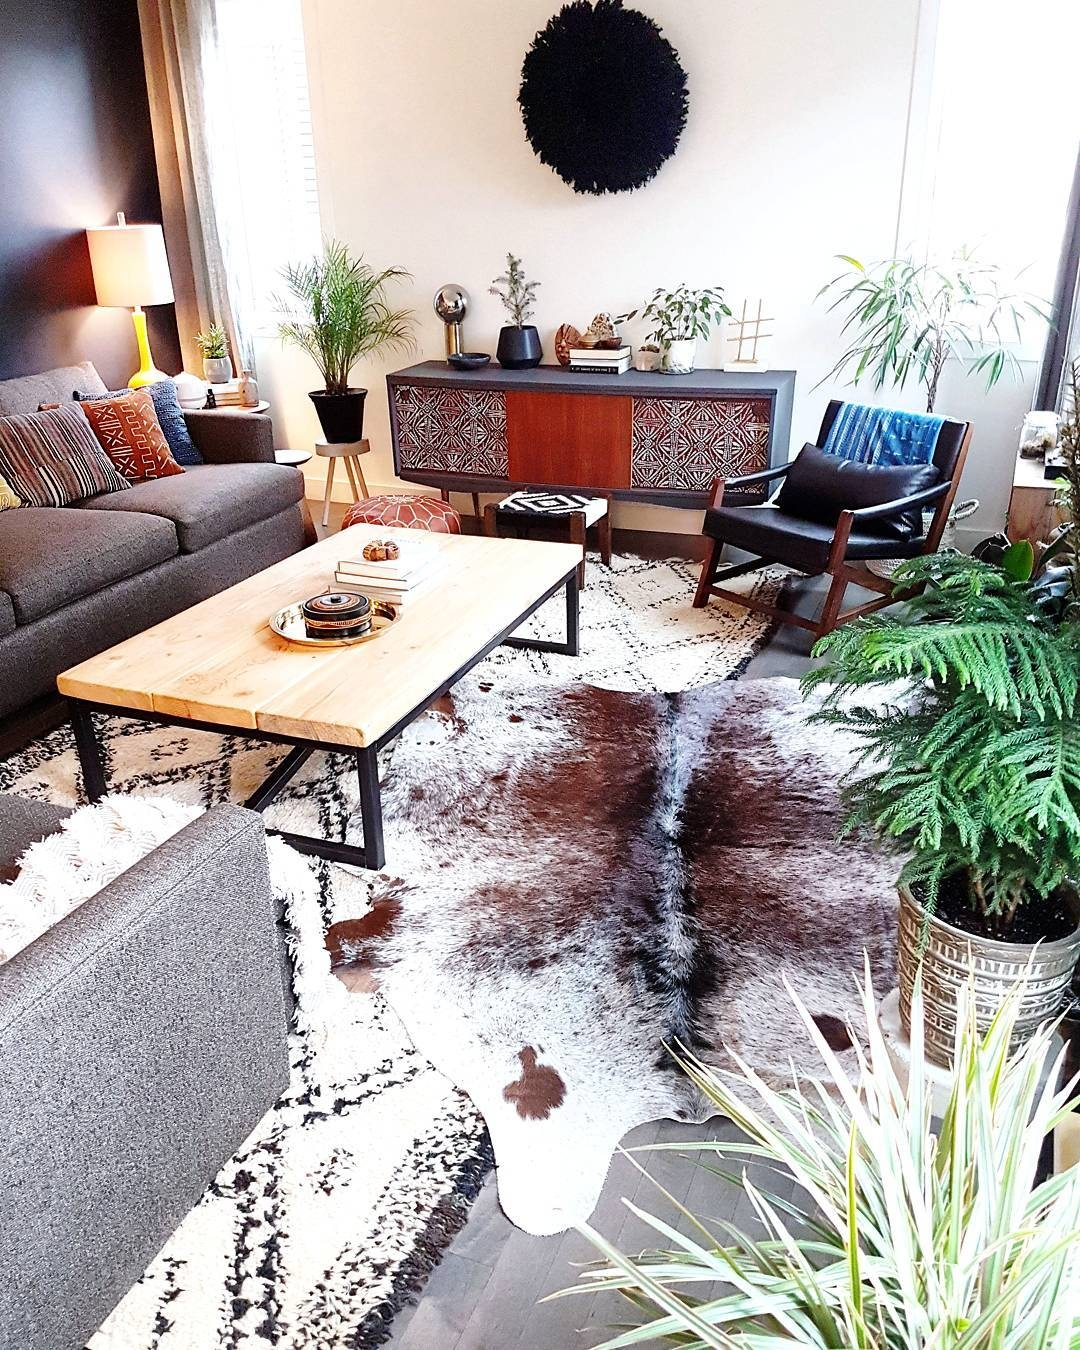 A cowhide rug grey white black is just as class as the home features, from wooden floor to fireplace decor and windows gives this a modern feel.